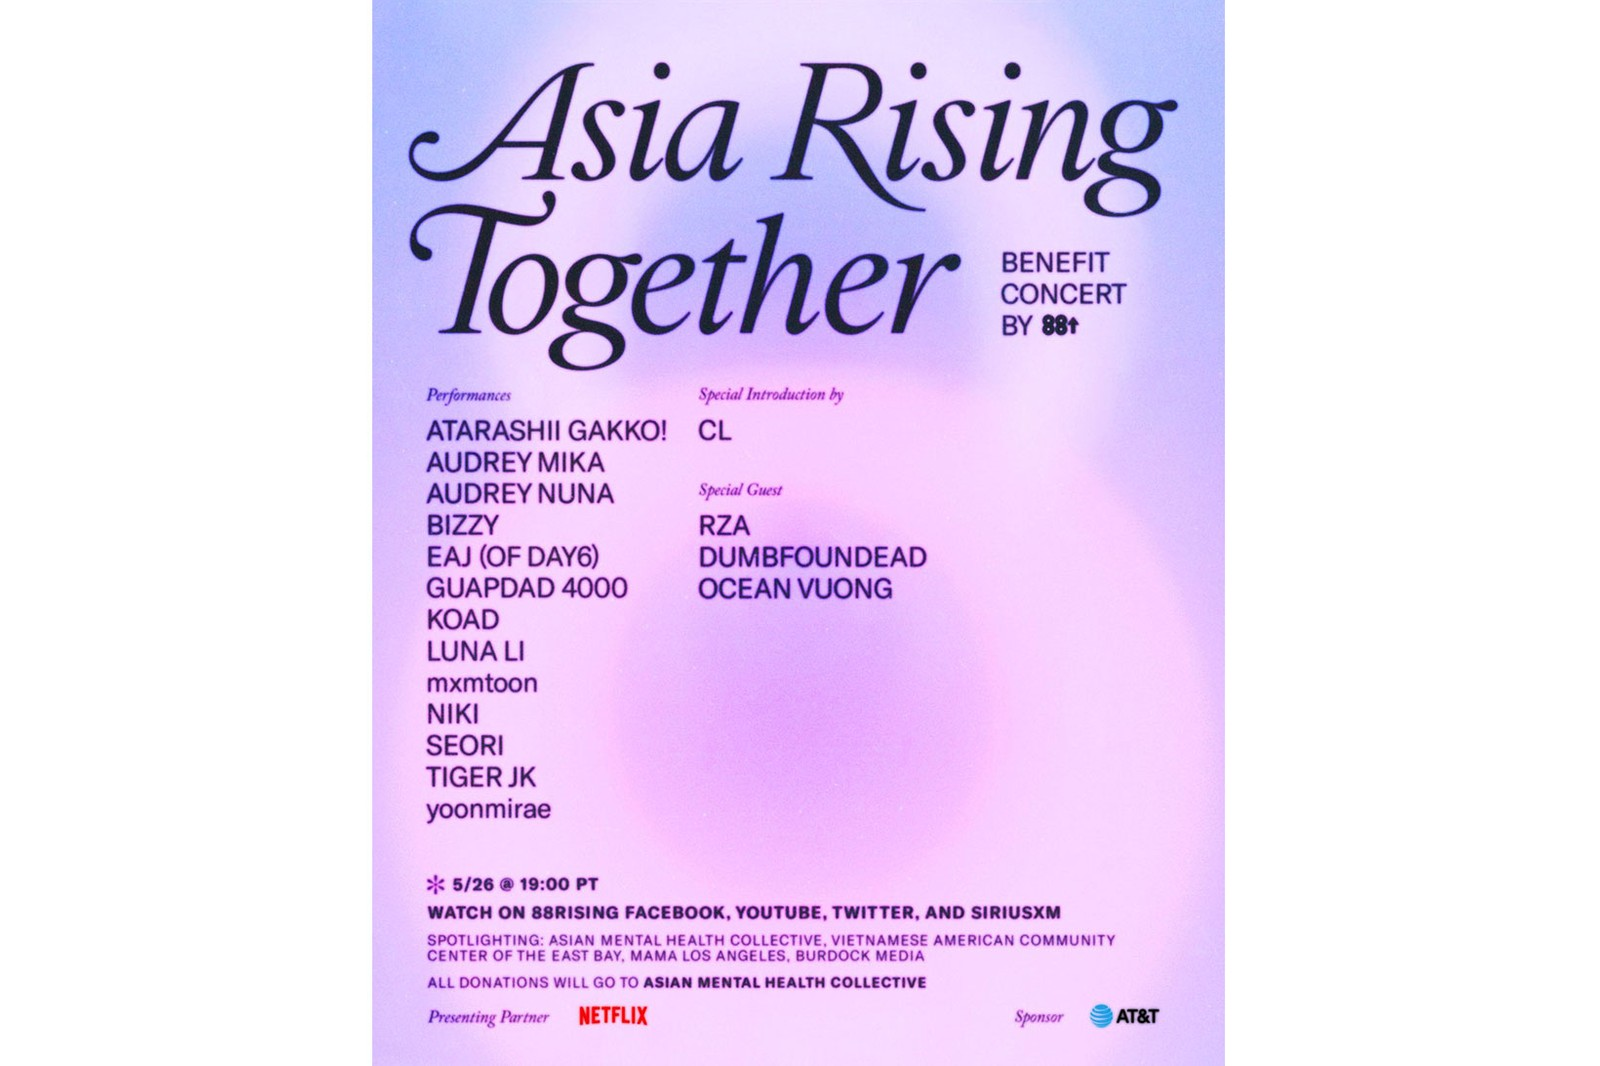 88rising asia rising together aapi heritage month benefit concert CL NIKI AUDREY NUNA eaj day6 watch livestream info